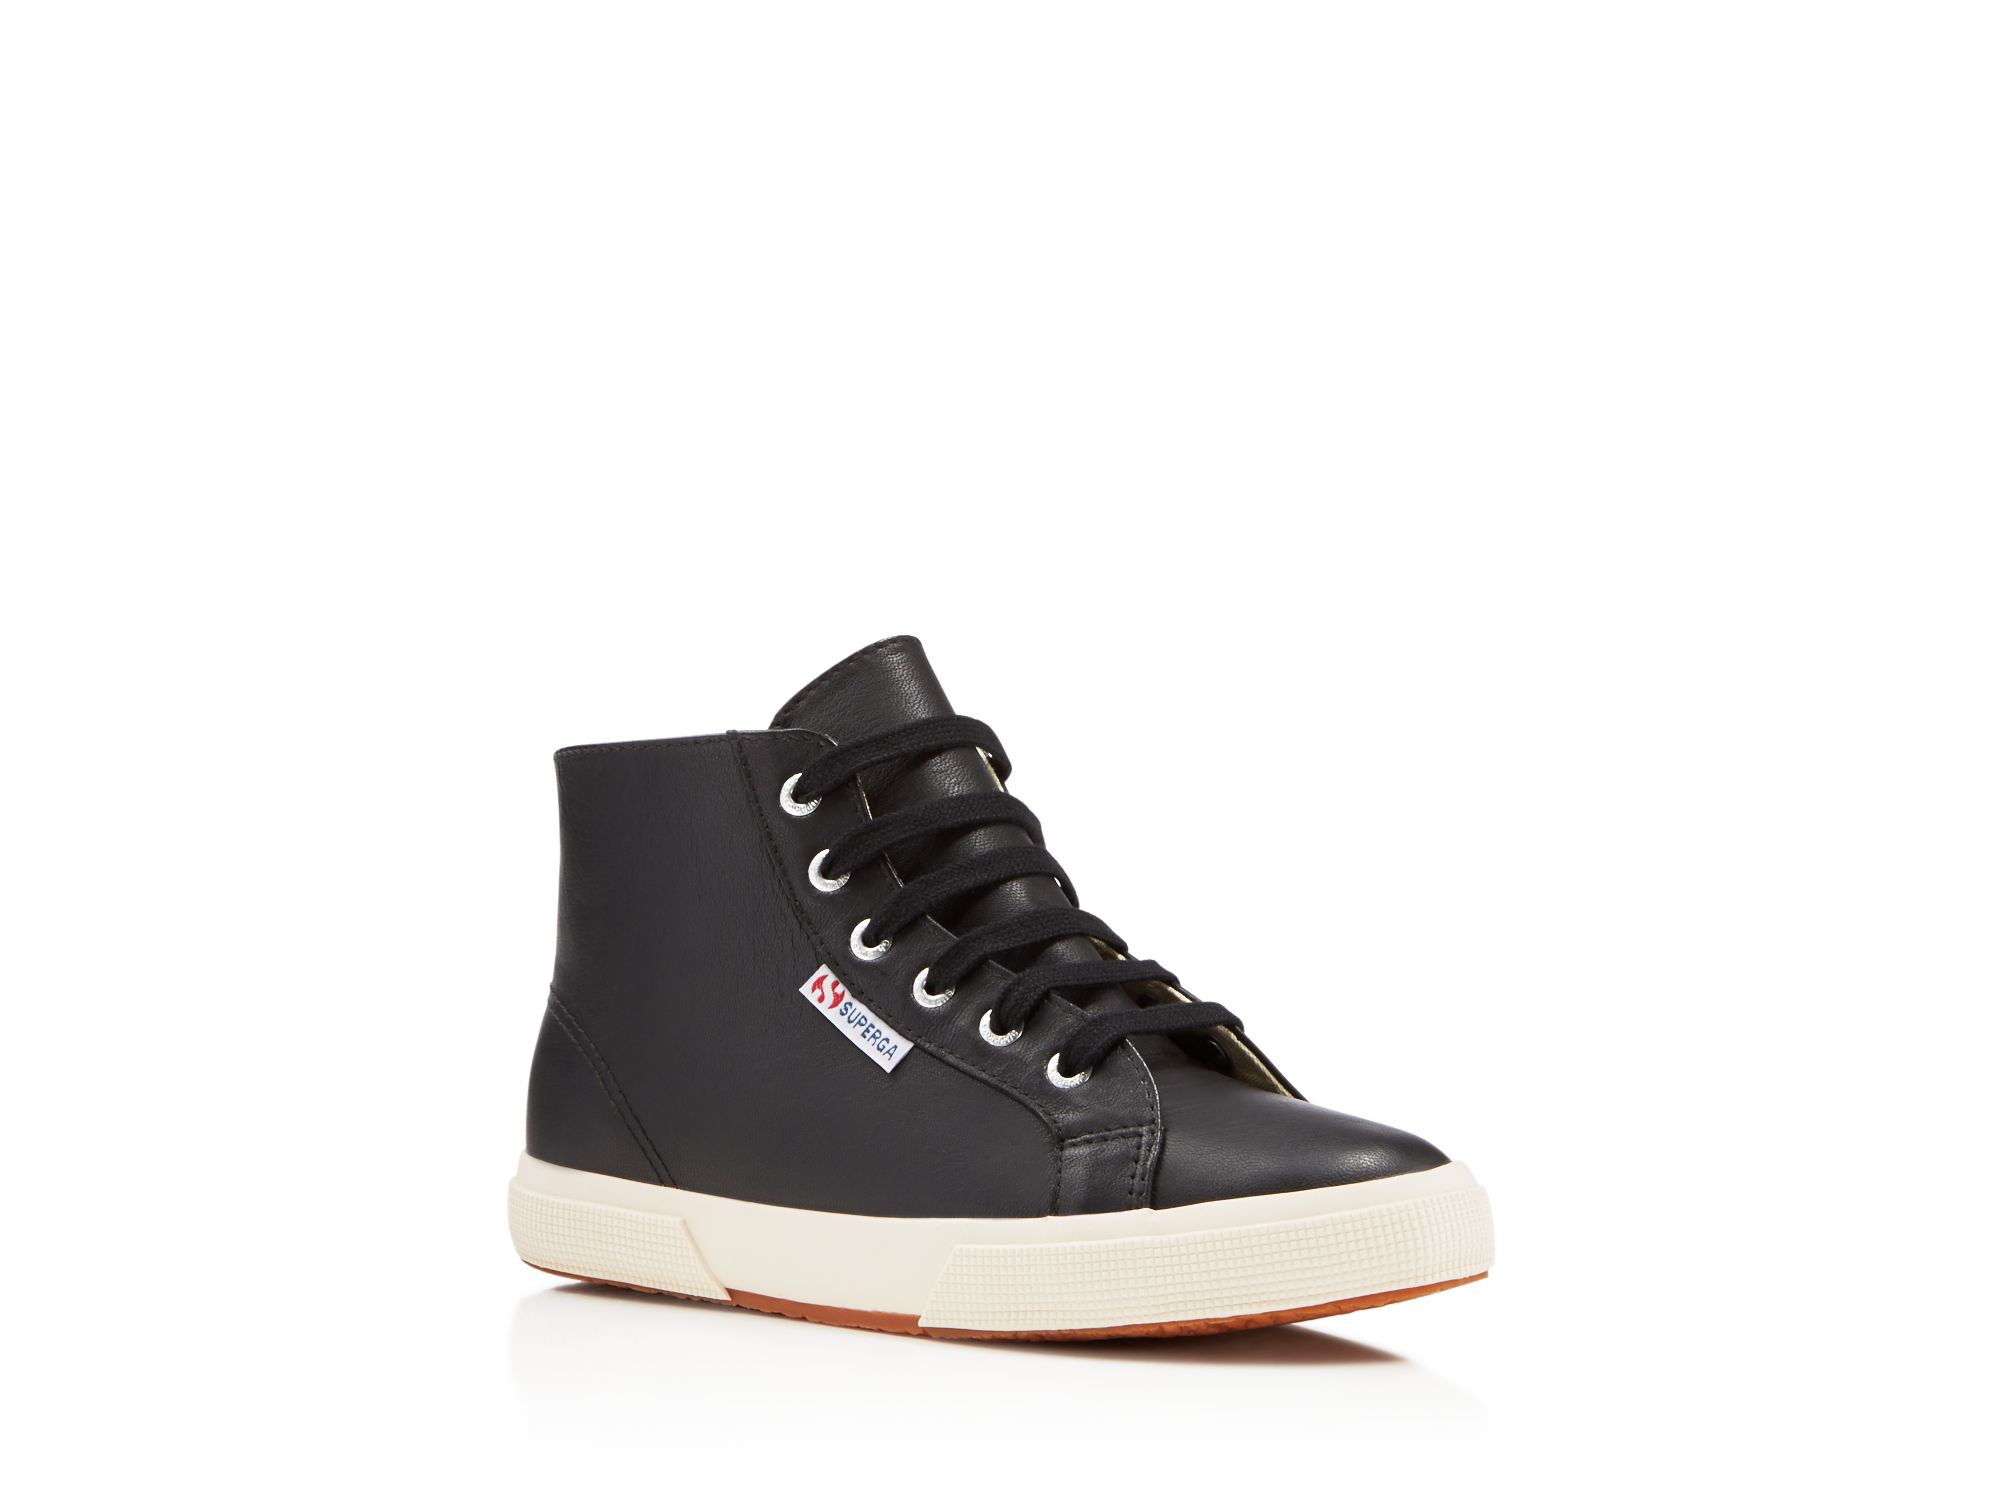 Superga Nappaw Lace Up High Top Sneakers in Black